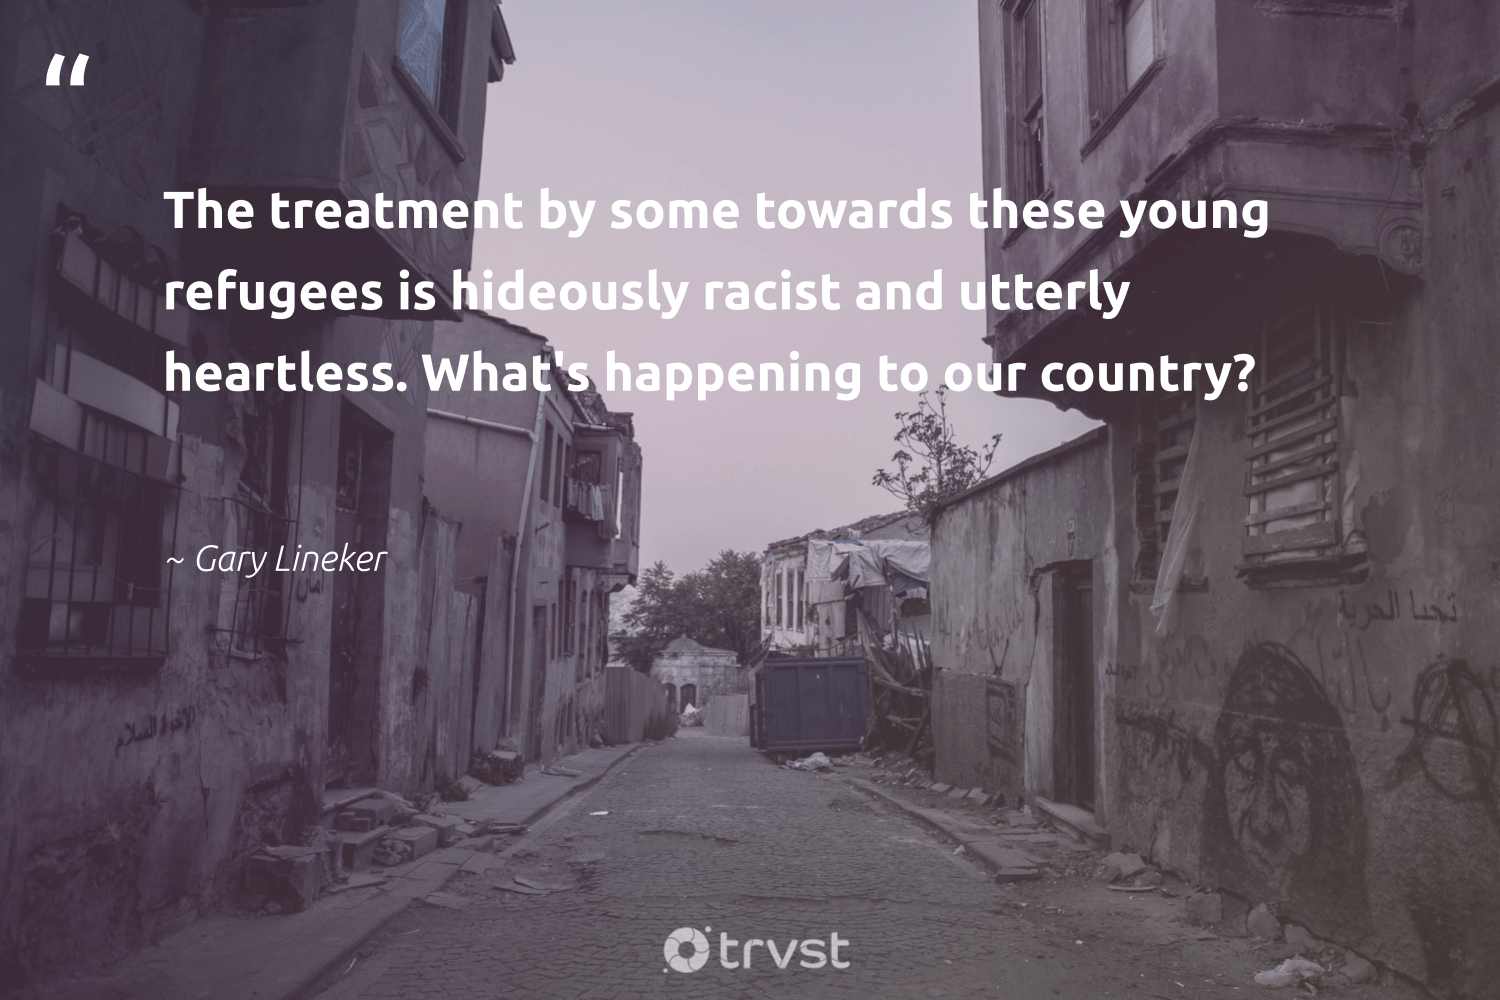 """""""The treatment by some towards these young refugees is hideously racist and utterly heartless. What's happening to our country?""""  - Gary Lineker #trvst #quotes #refugees #refugee #sustainablefutures #makeadifference #collectiveaction #refugeeswelcome #weareallone #inclusion #socialimpact #syria"""